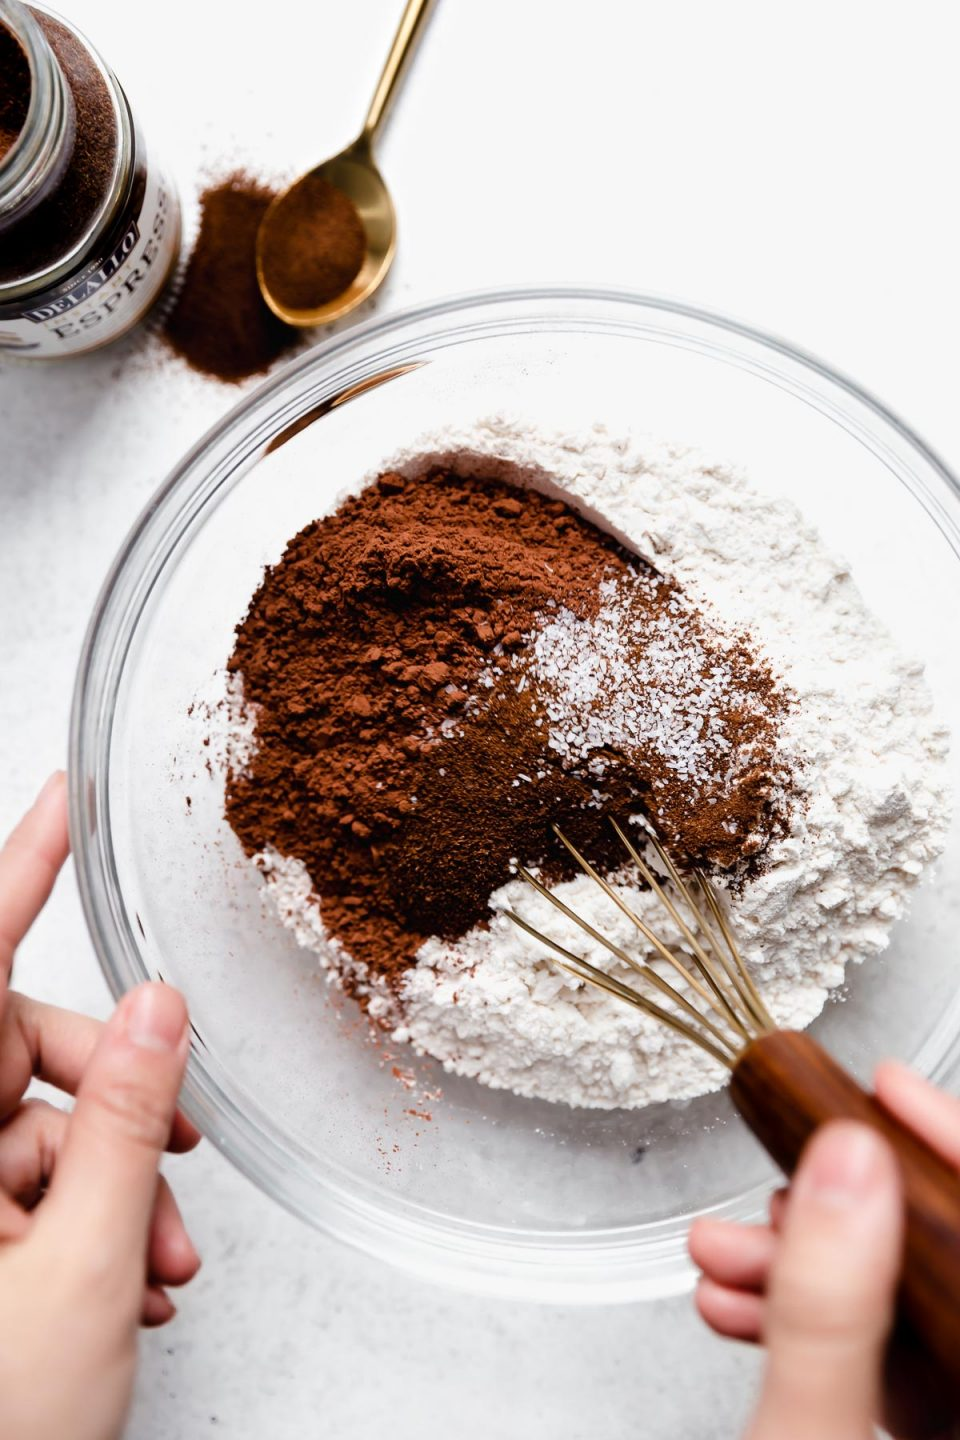 Thumbprint cookies dry mix (flour, cocoa powder, espresso powder & salt) in a large mixing bowl. A woman's hands are reaching into the bowl with a small whisk. At the top of the frame sits a bottle of DeLallo Instant Espresso Baking powder.